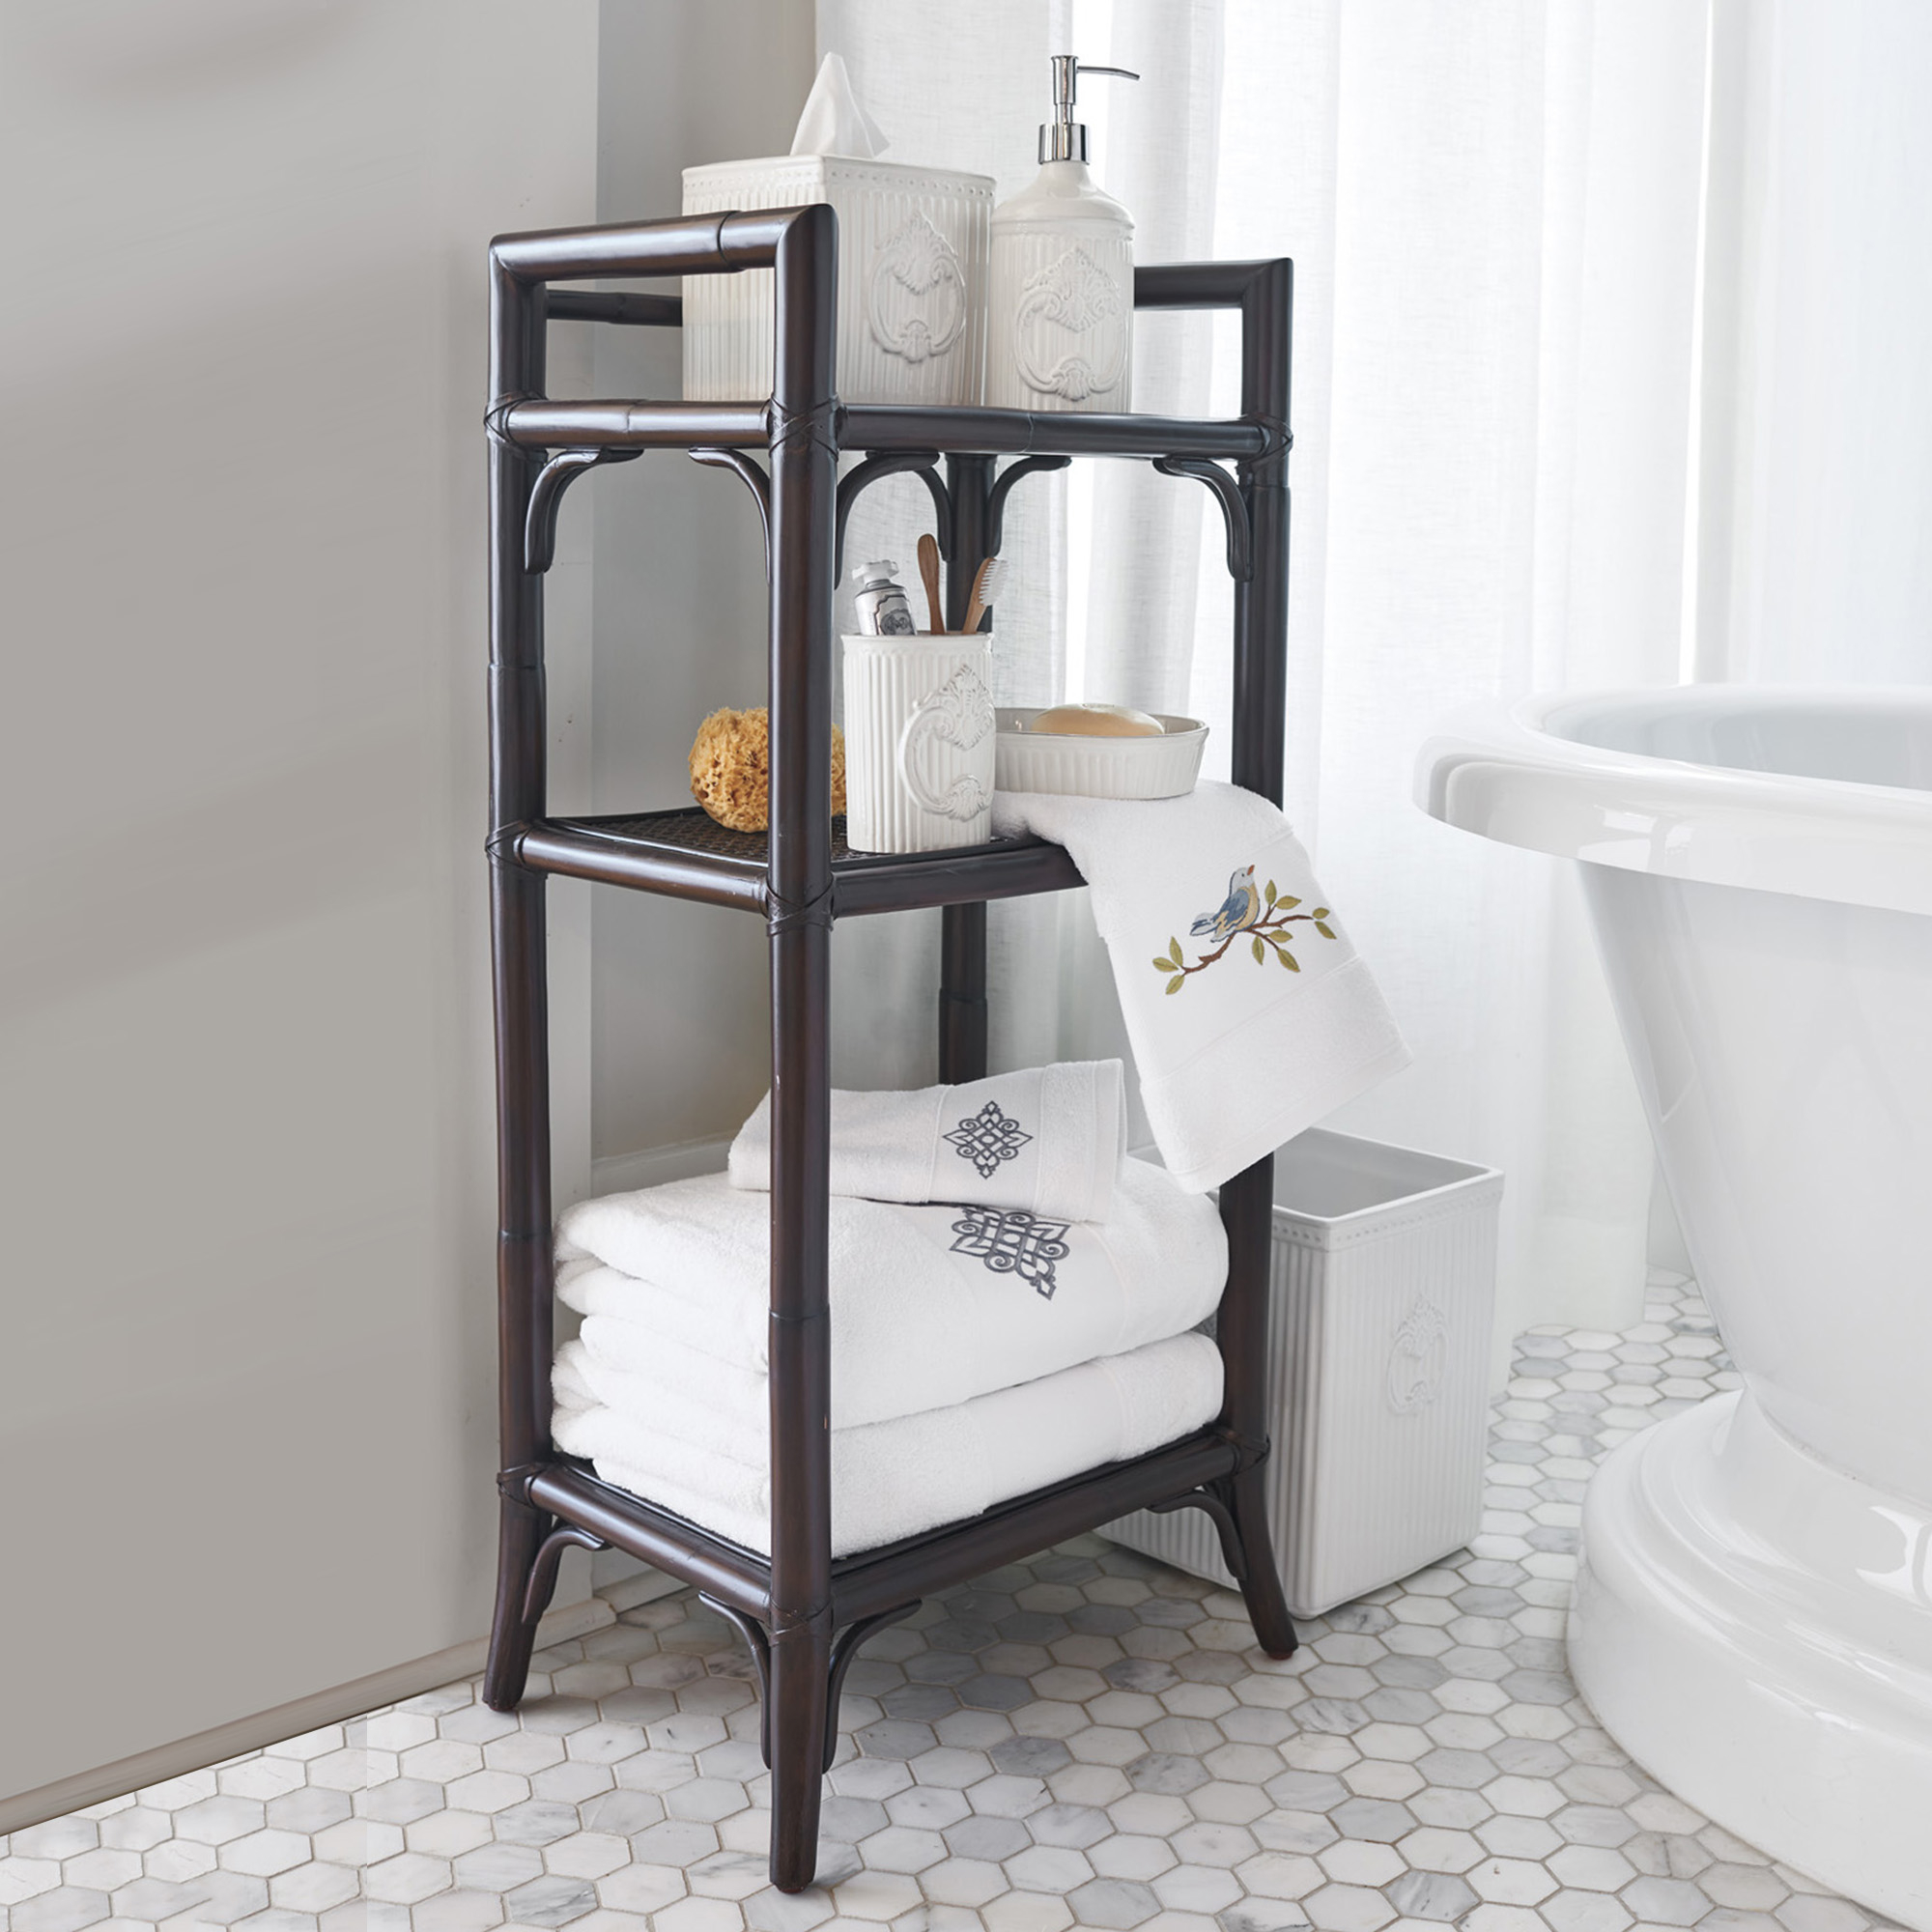 Rattan Cane Bath Shelf